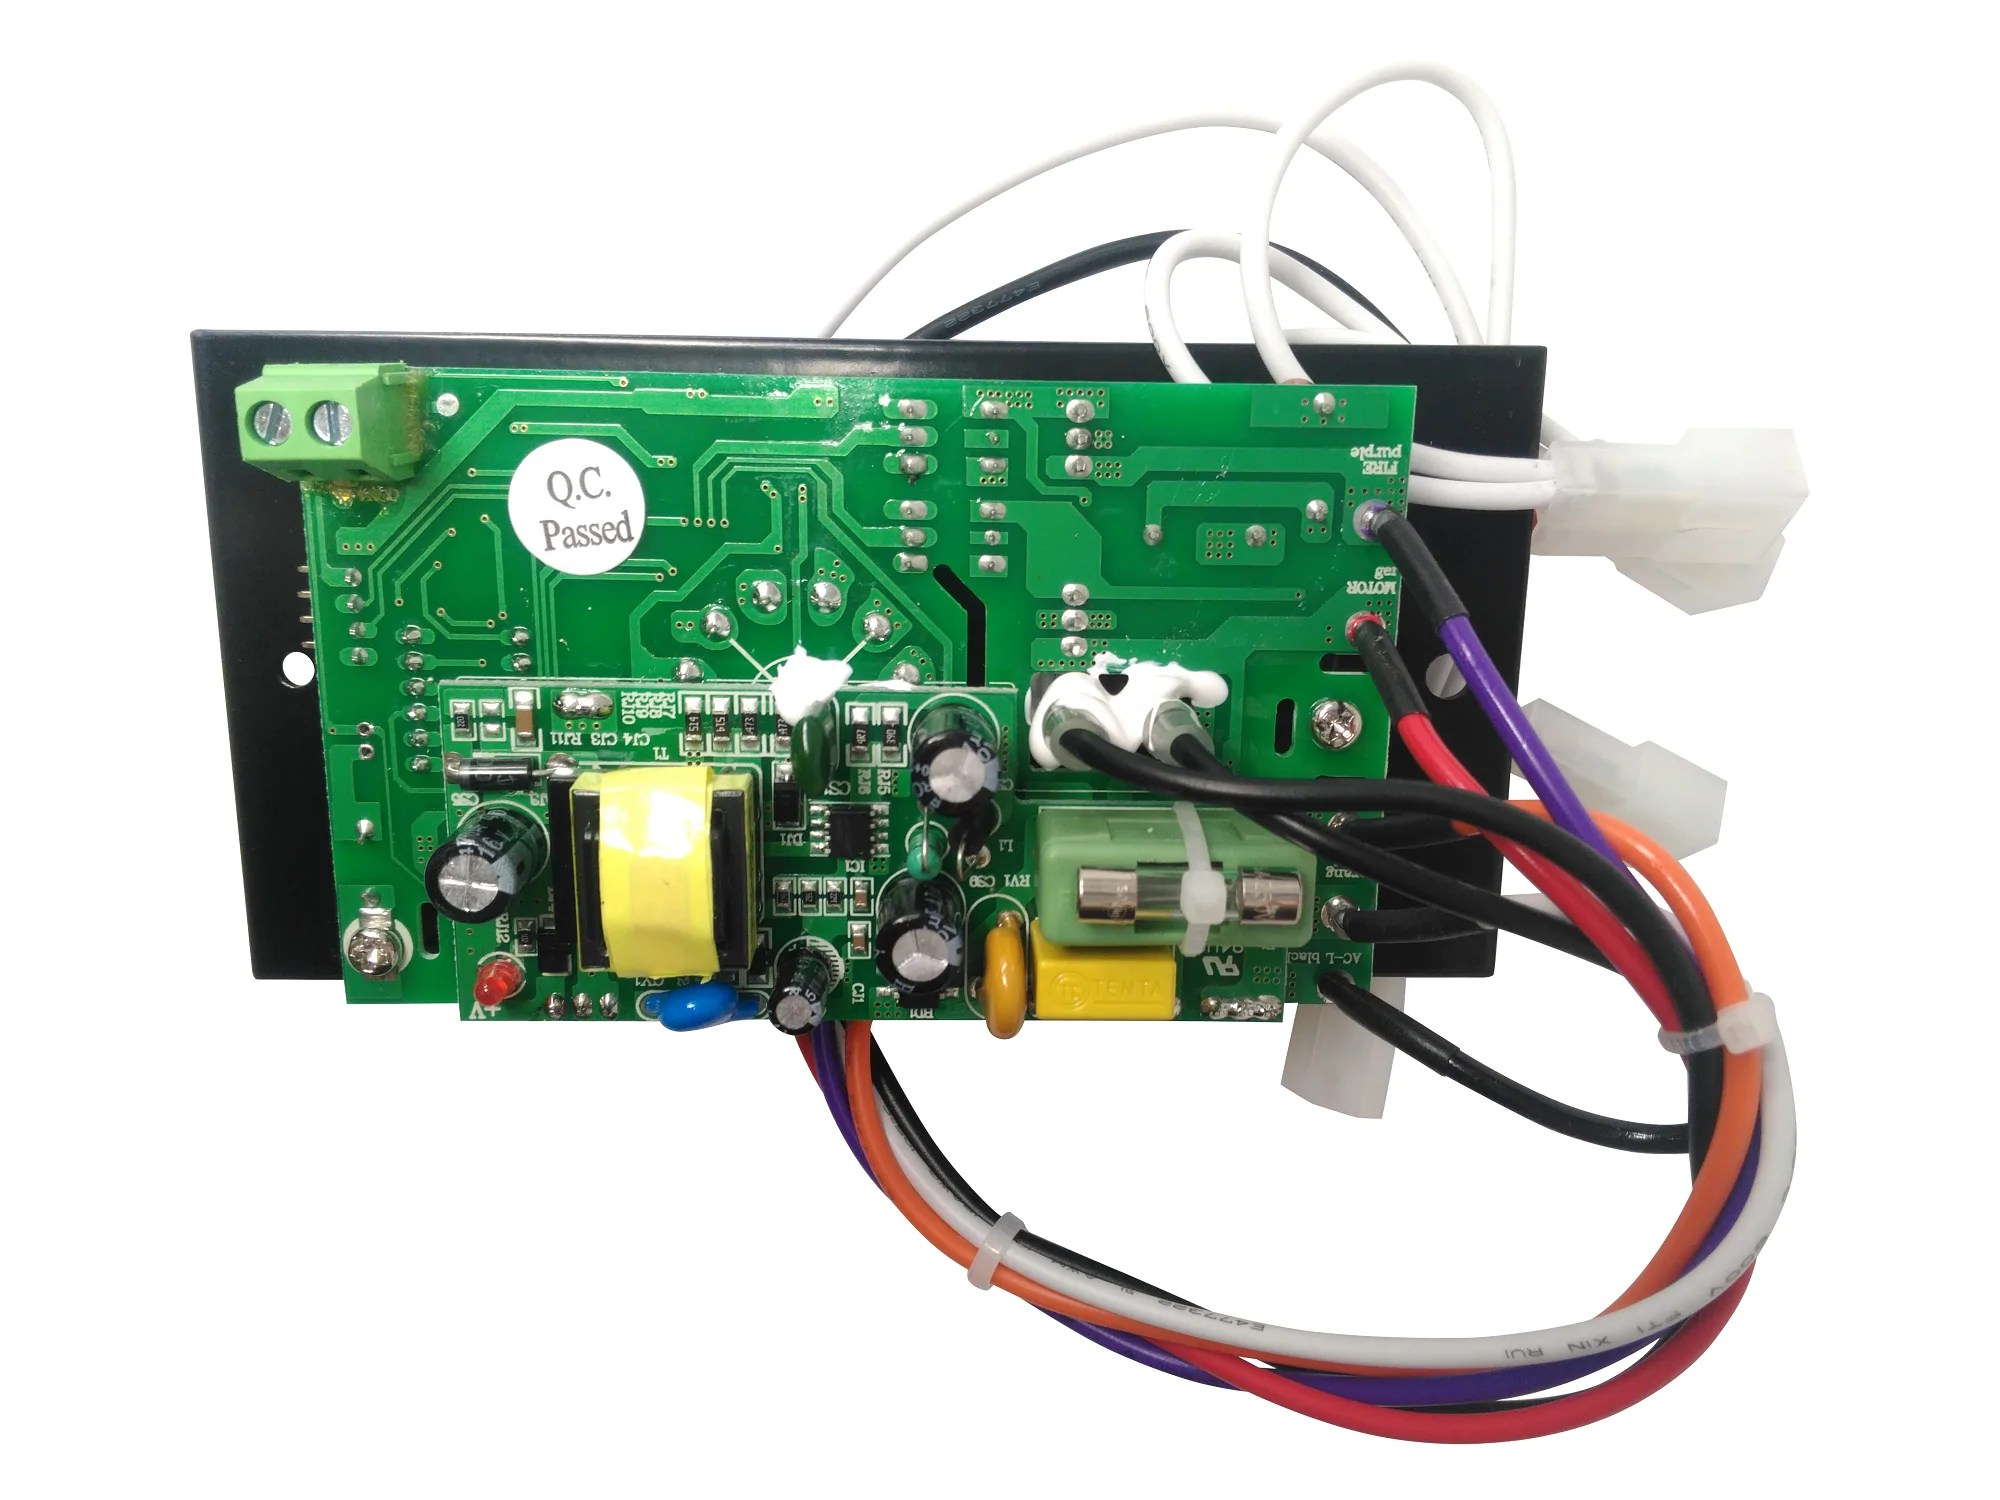 small resolution of traeger digital thermostat control board for many models bac236 dometic 3313189 000 thermostat wiring diagram traeger digital thermostat wiring diagram